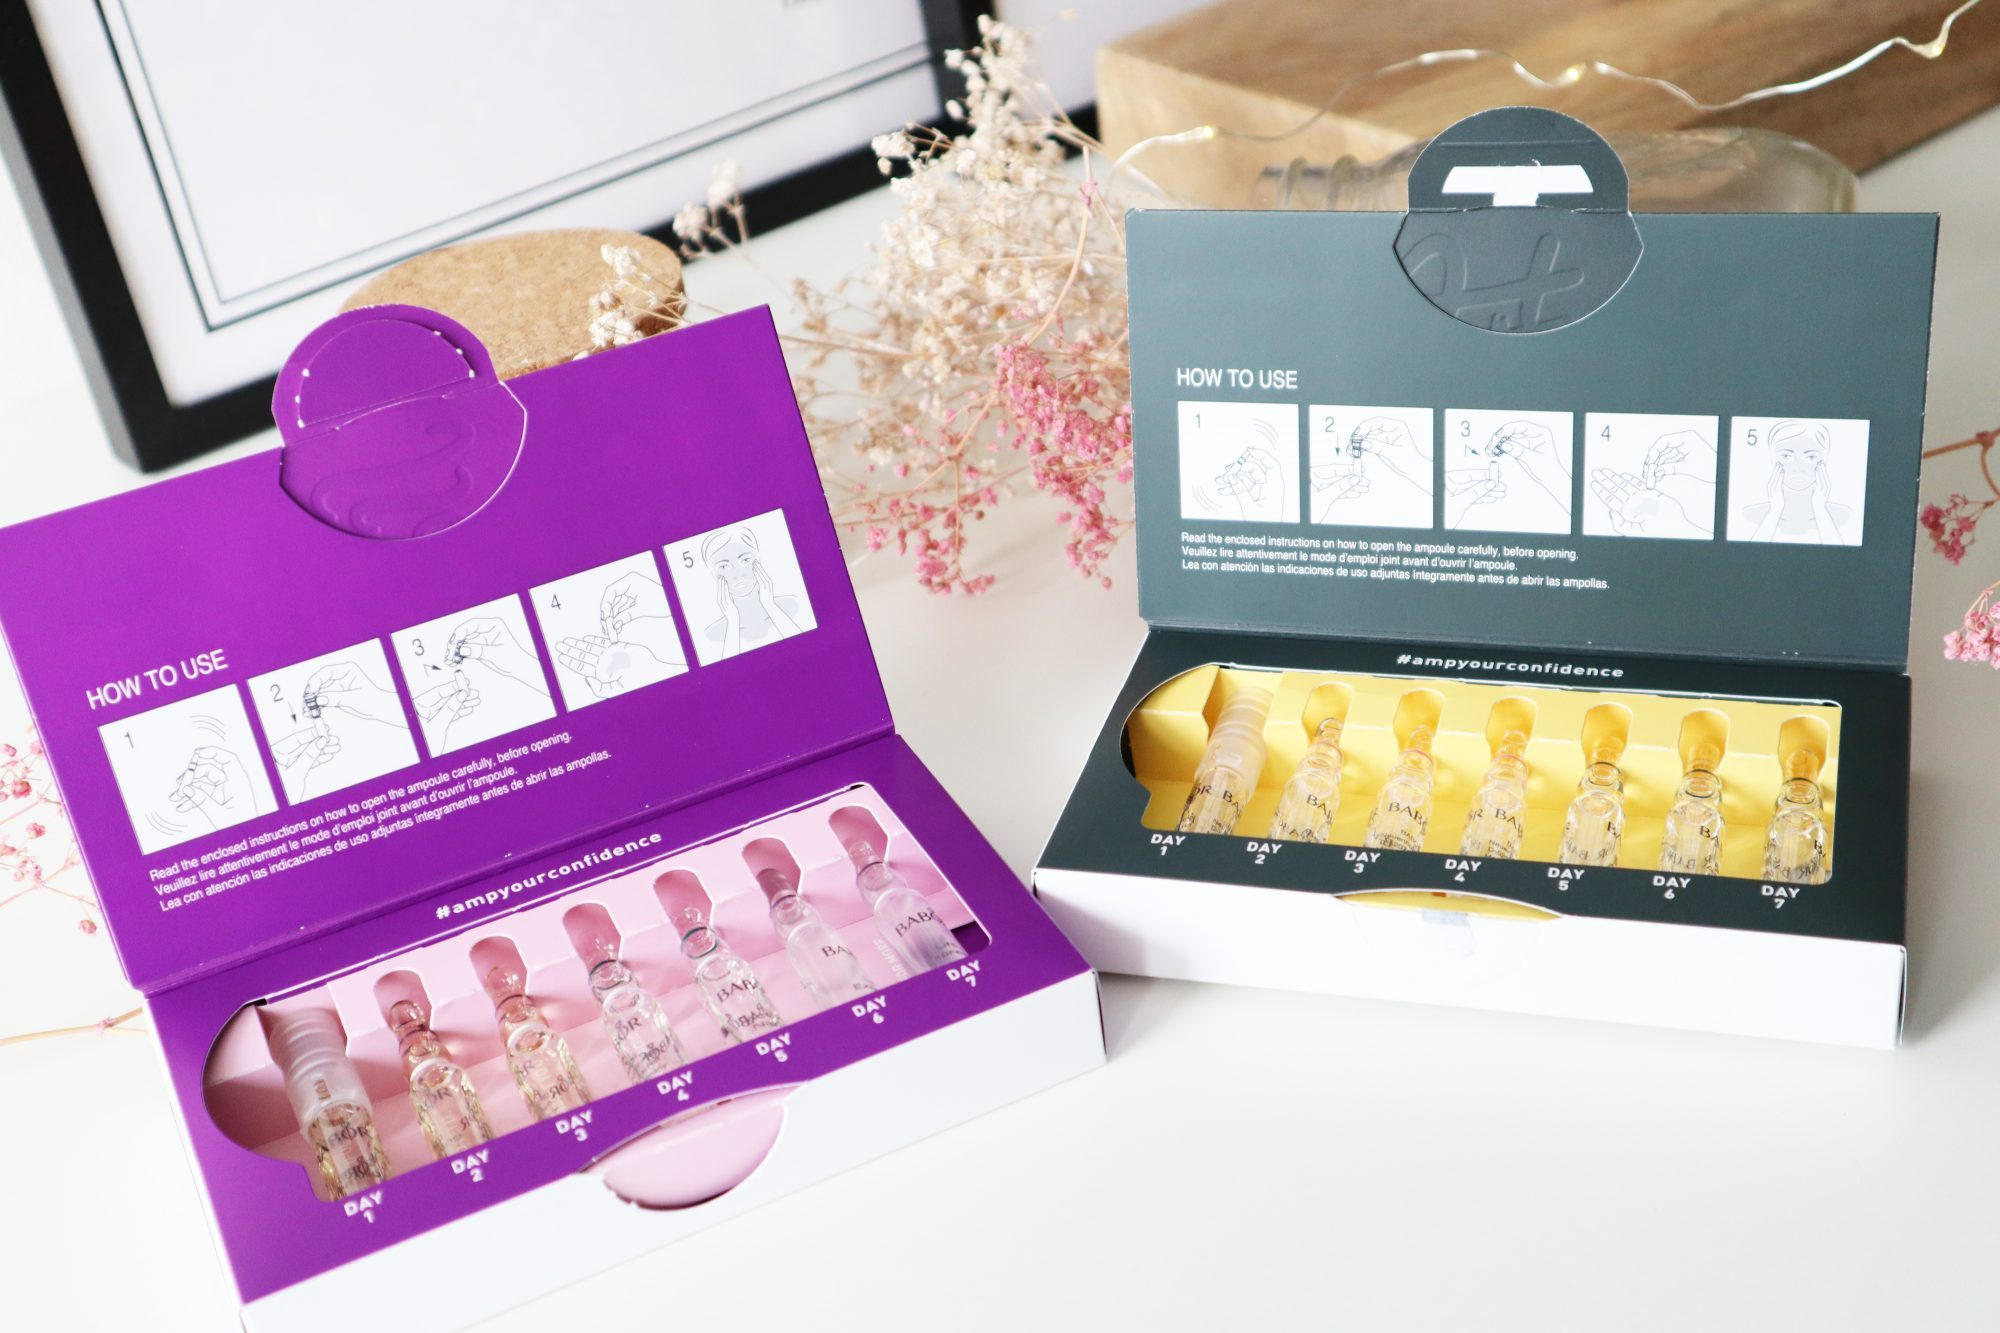 BABOR Ampoules Concentrates